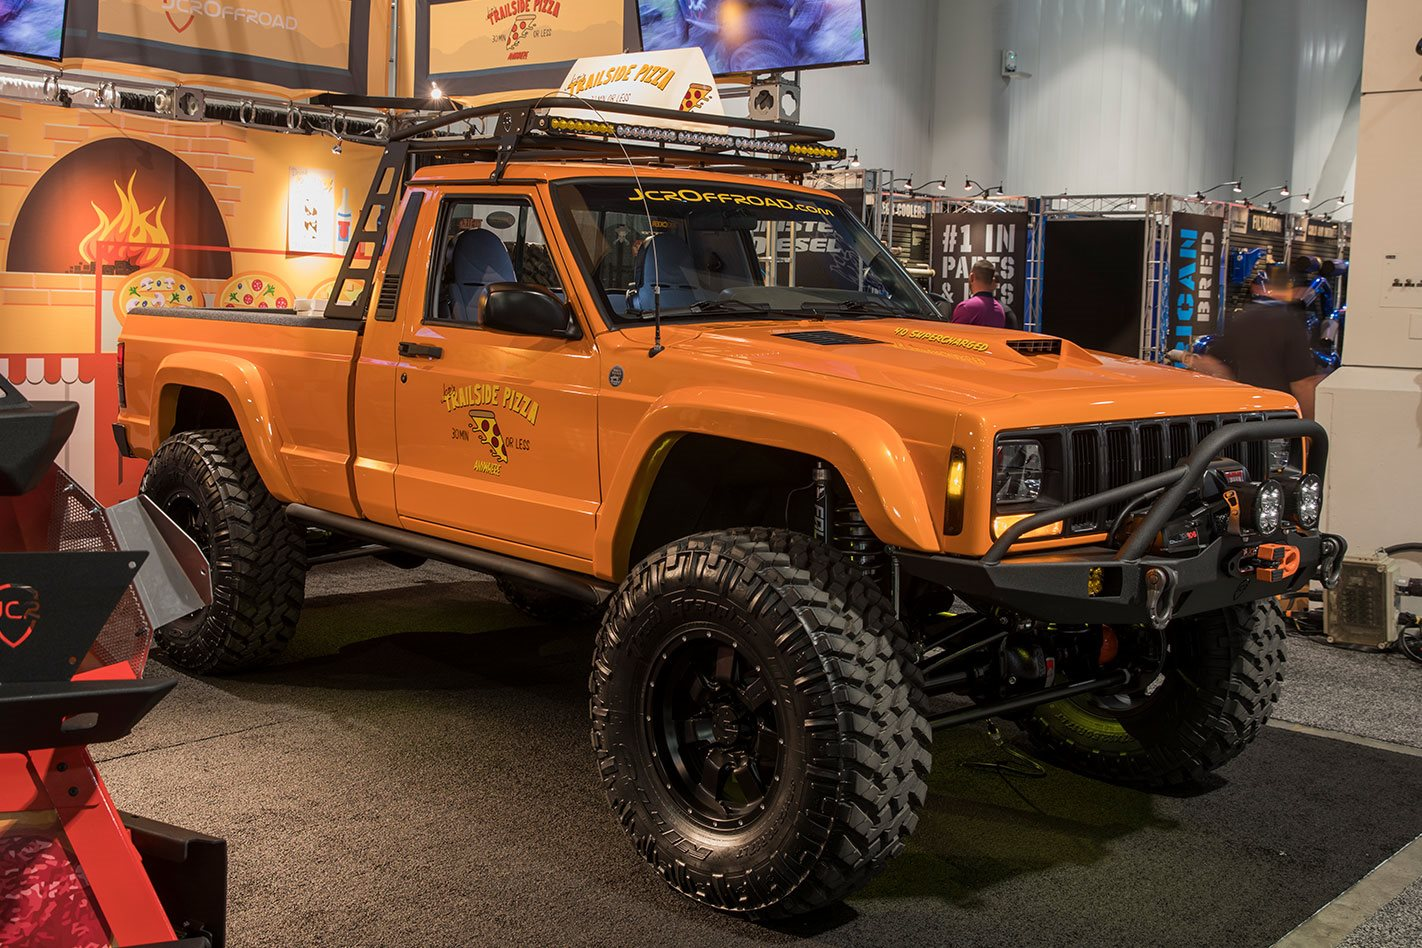 Jeep Wrangler Unlimited Overland Diesel India furthermore Bjeep Bnacho Bconcept also Sema Jcr Offroad  anche as well Tjl moreover Jeep Wrangler Jk Side Steps. on jeep wrangler desert off road x